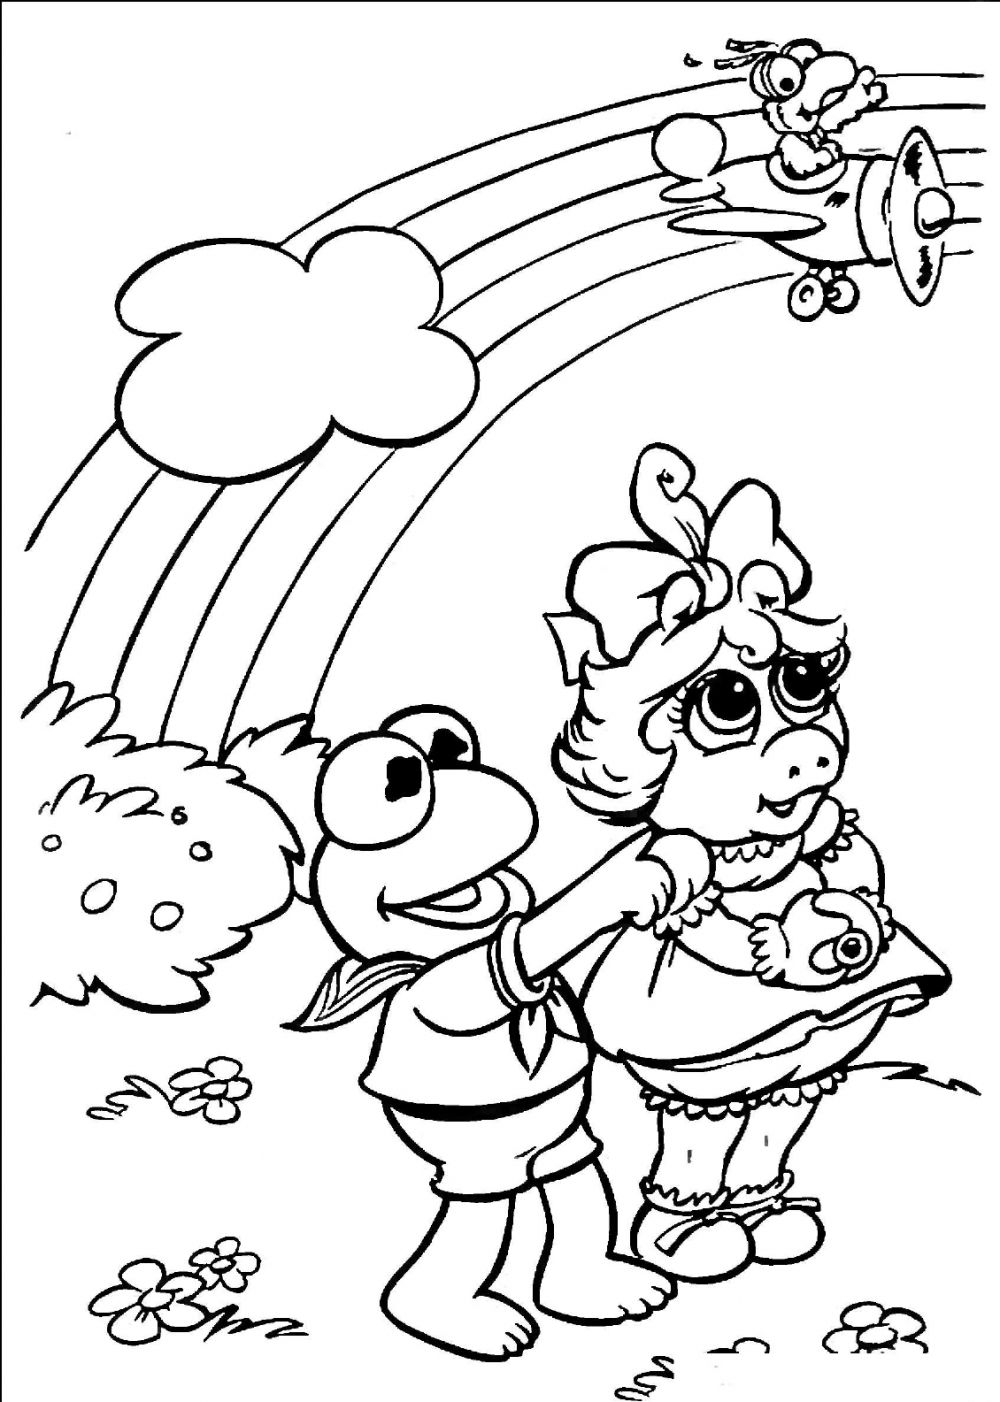 coloring printable pages for kids free printable rainbow coloring pages for kids kids printable for pages coloring